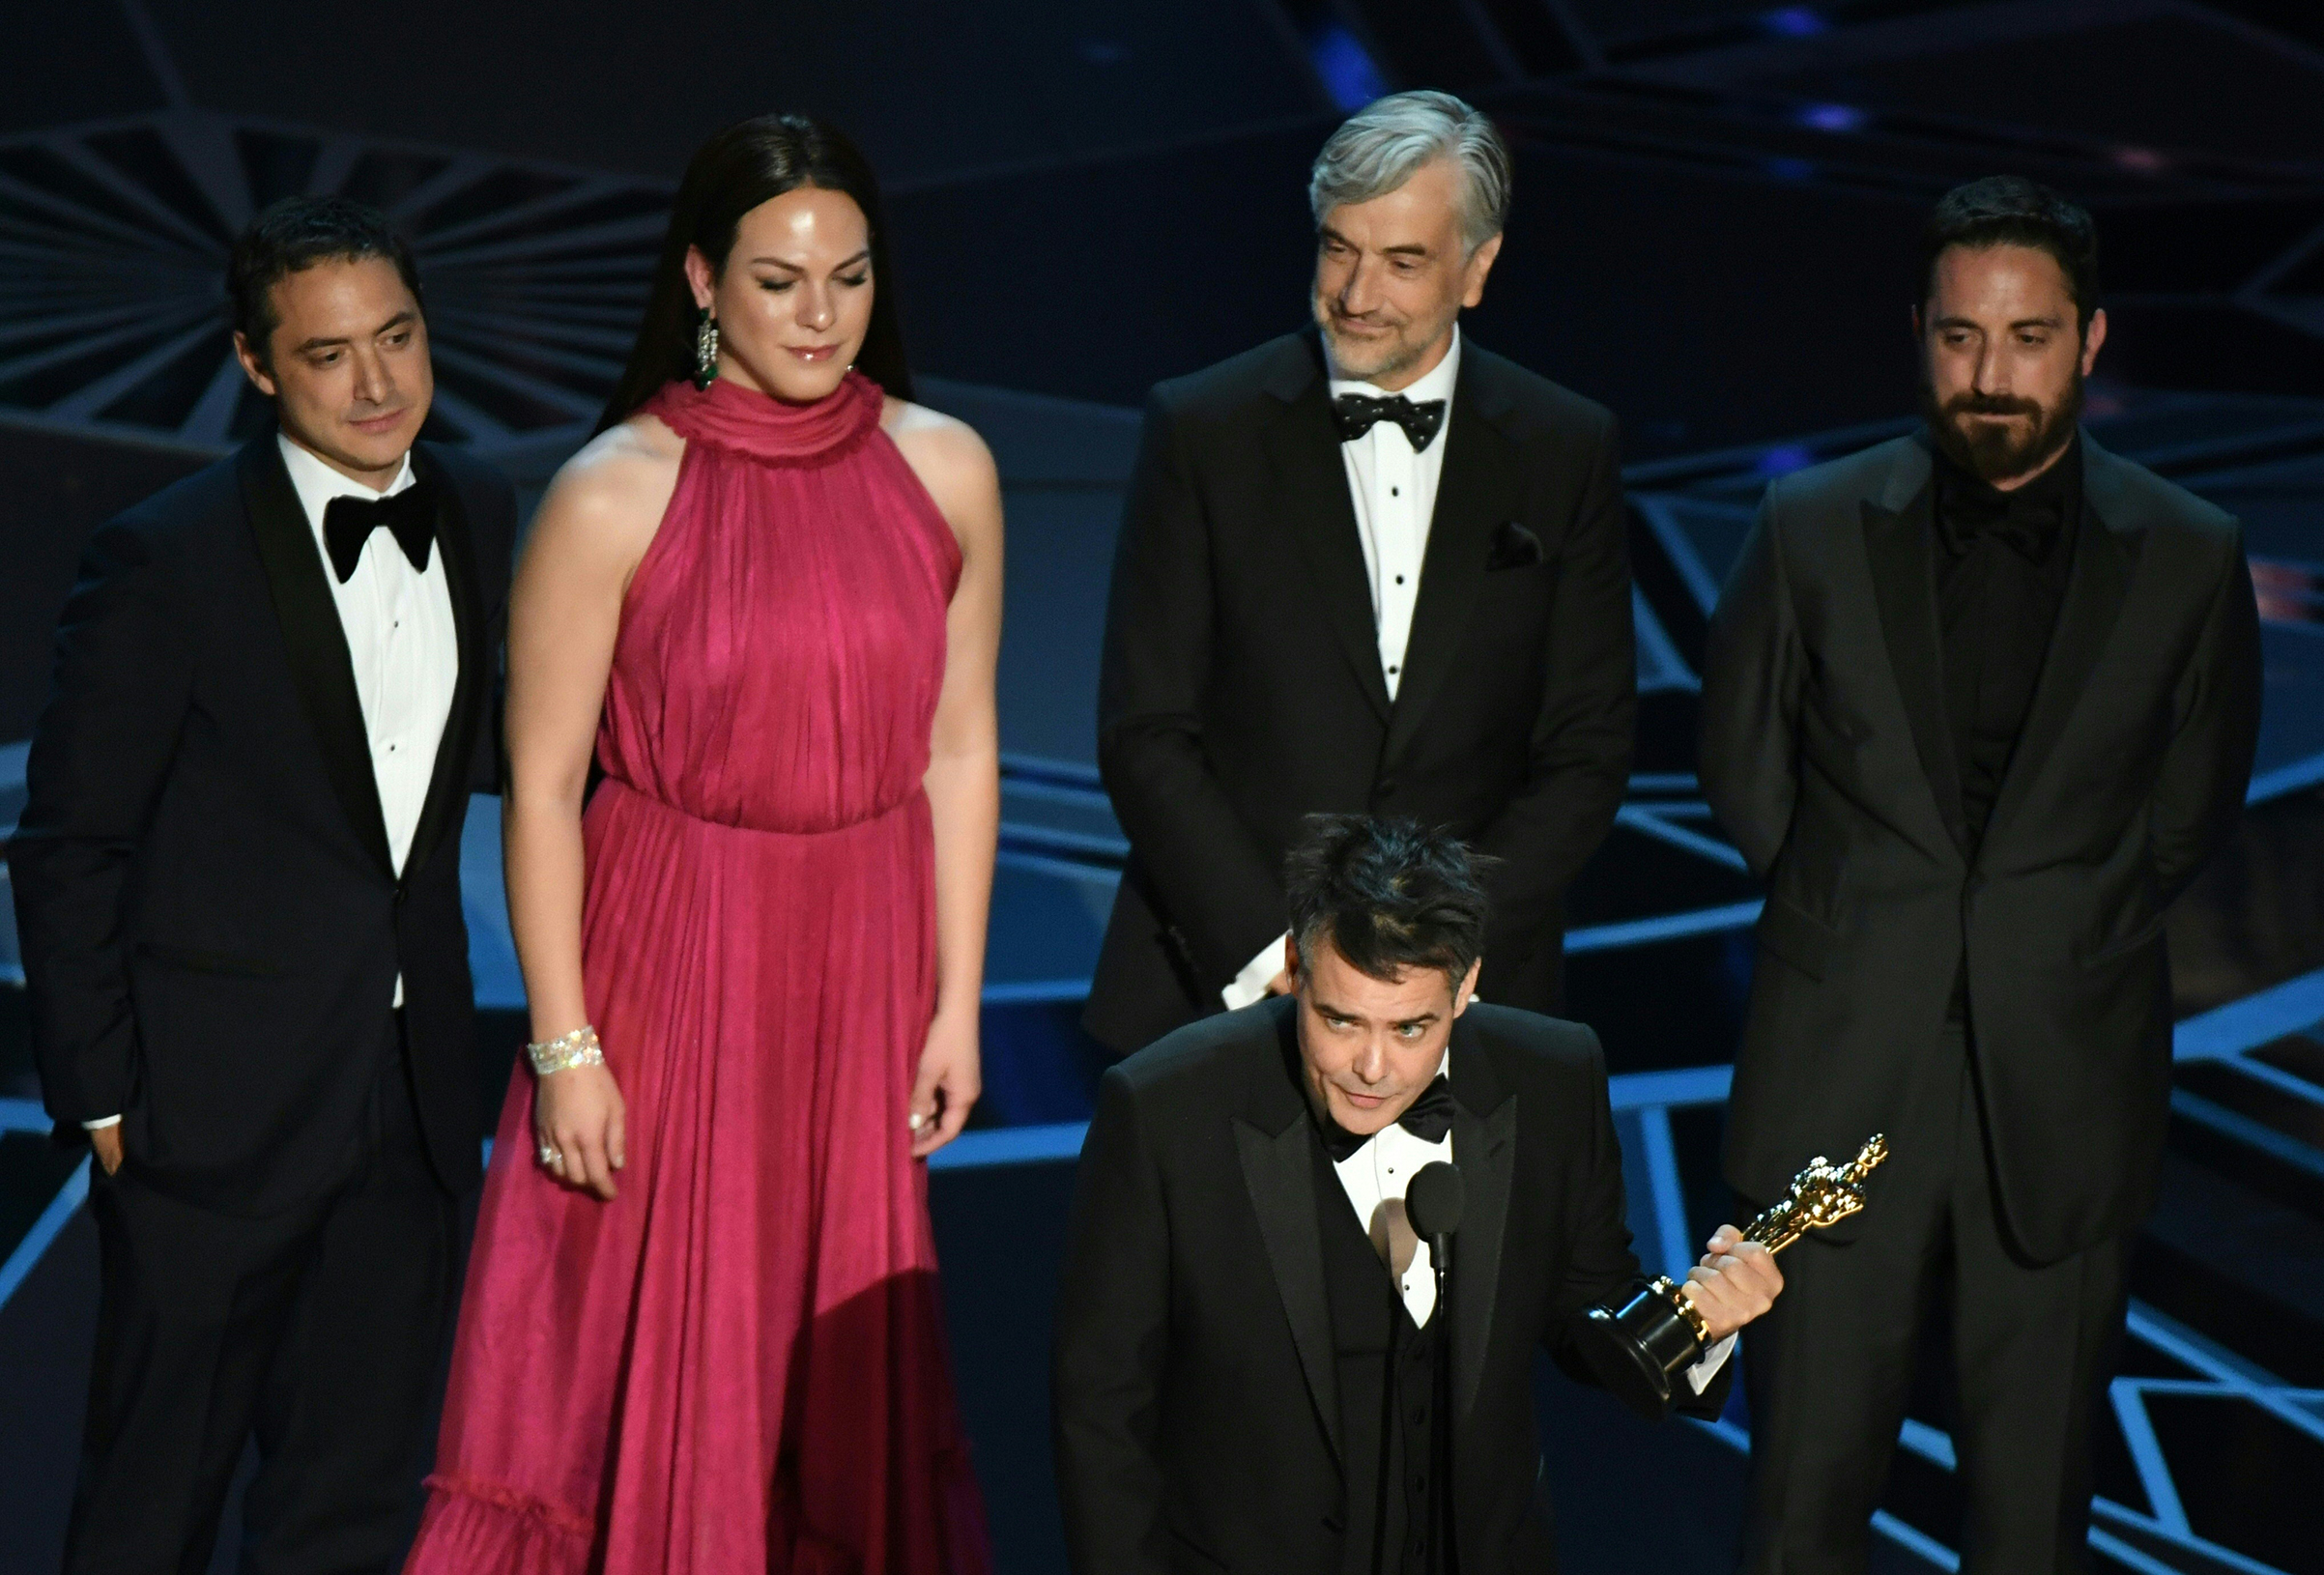 Chilean director Sebastian Lelio delivers a speech after he won the Oscar for Best Foreign Language Film for  A Fantastic Woman  during the 90th Annual Academy Awards show on March 4, 2018 in Hollywood.